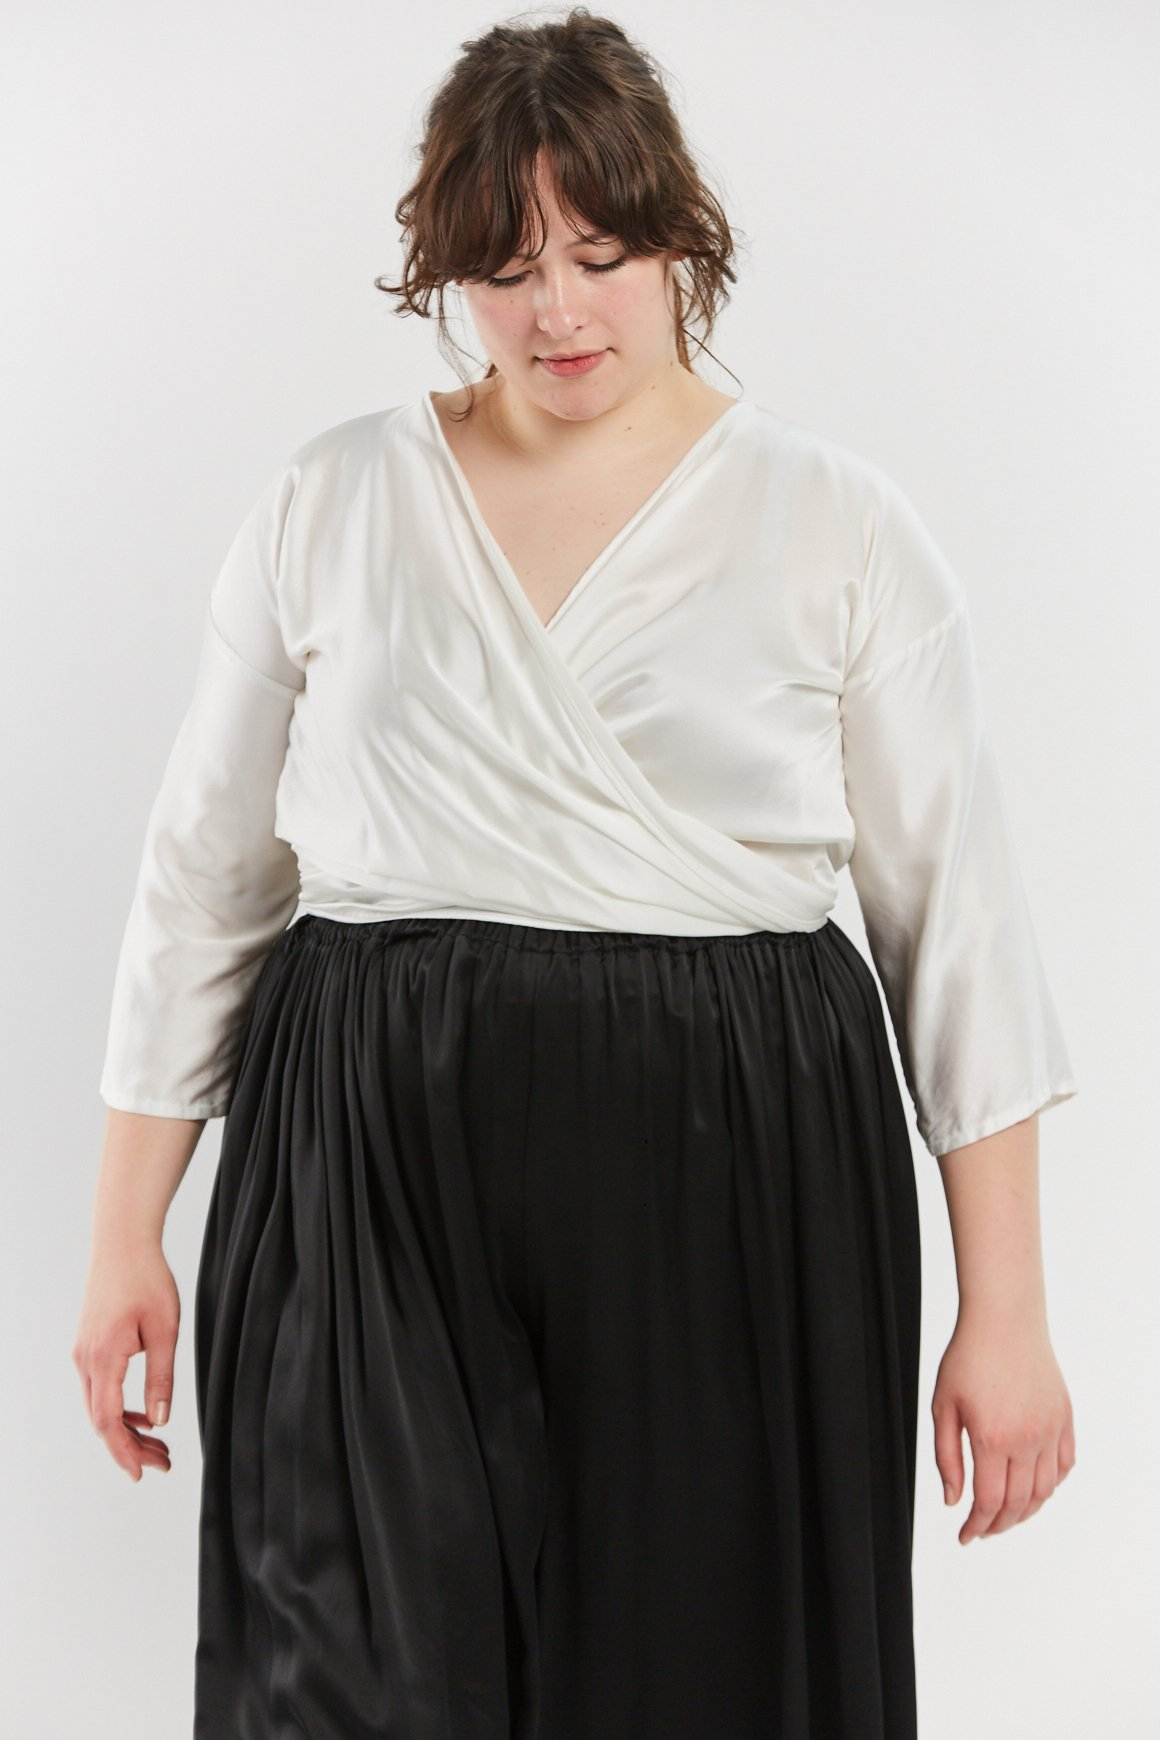 MIRANDA BENNETT (ECO) - Beautiful and delicate tops, dresses and pants with one size design.$$-$$$, US, Sizes: 0 - 22, Worldwide delivery